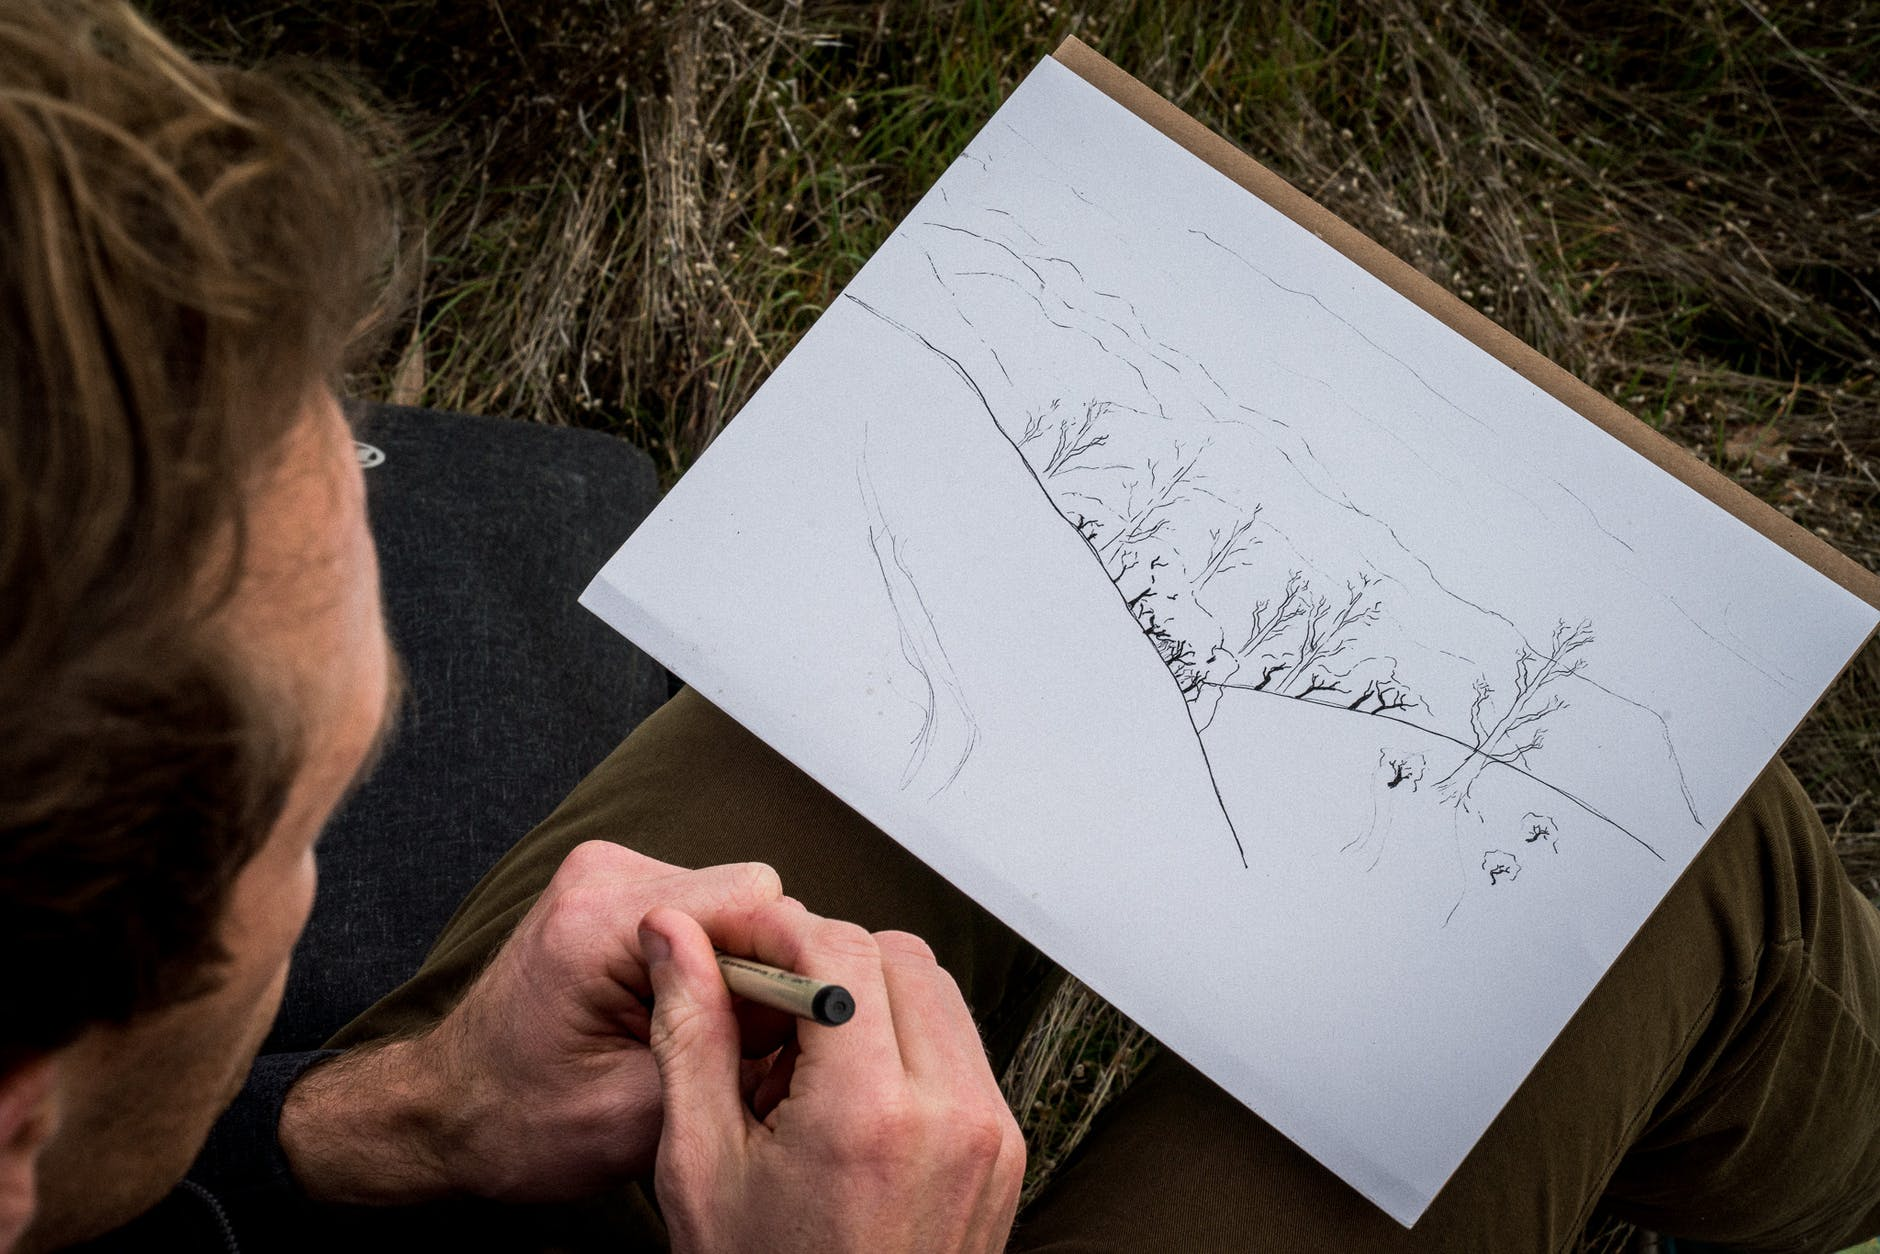 Man looking at his drawing of the landscape while sitting outside